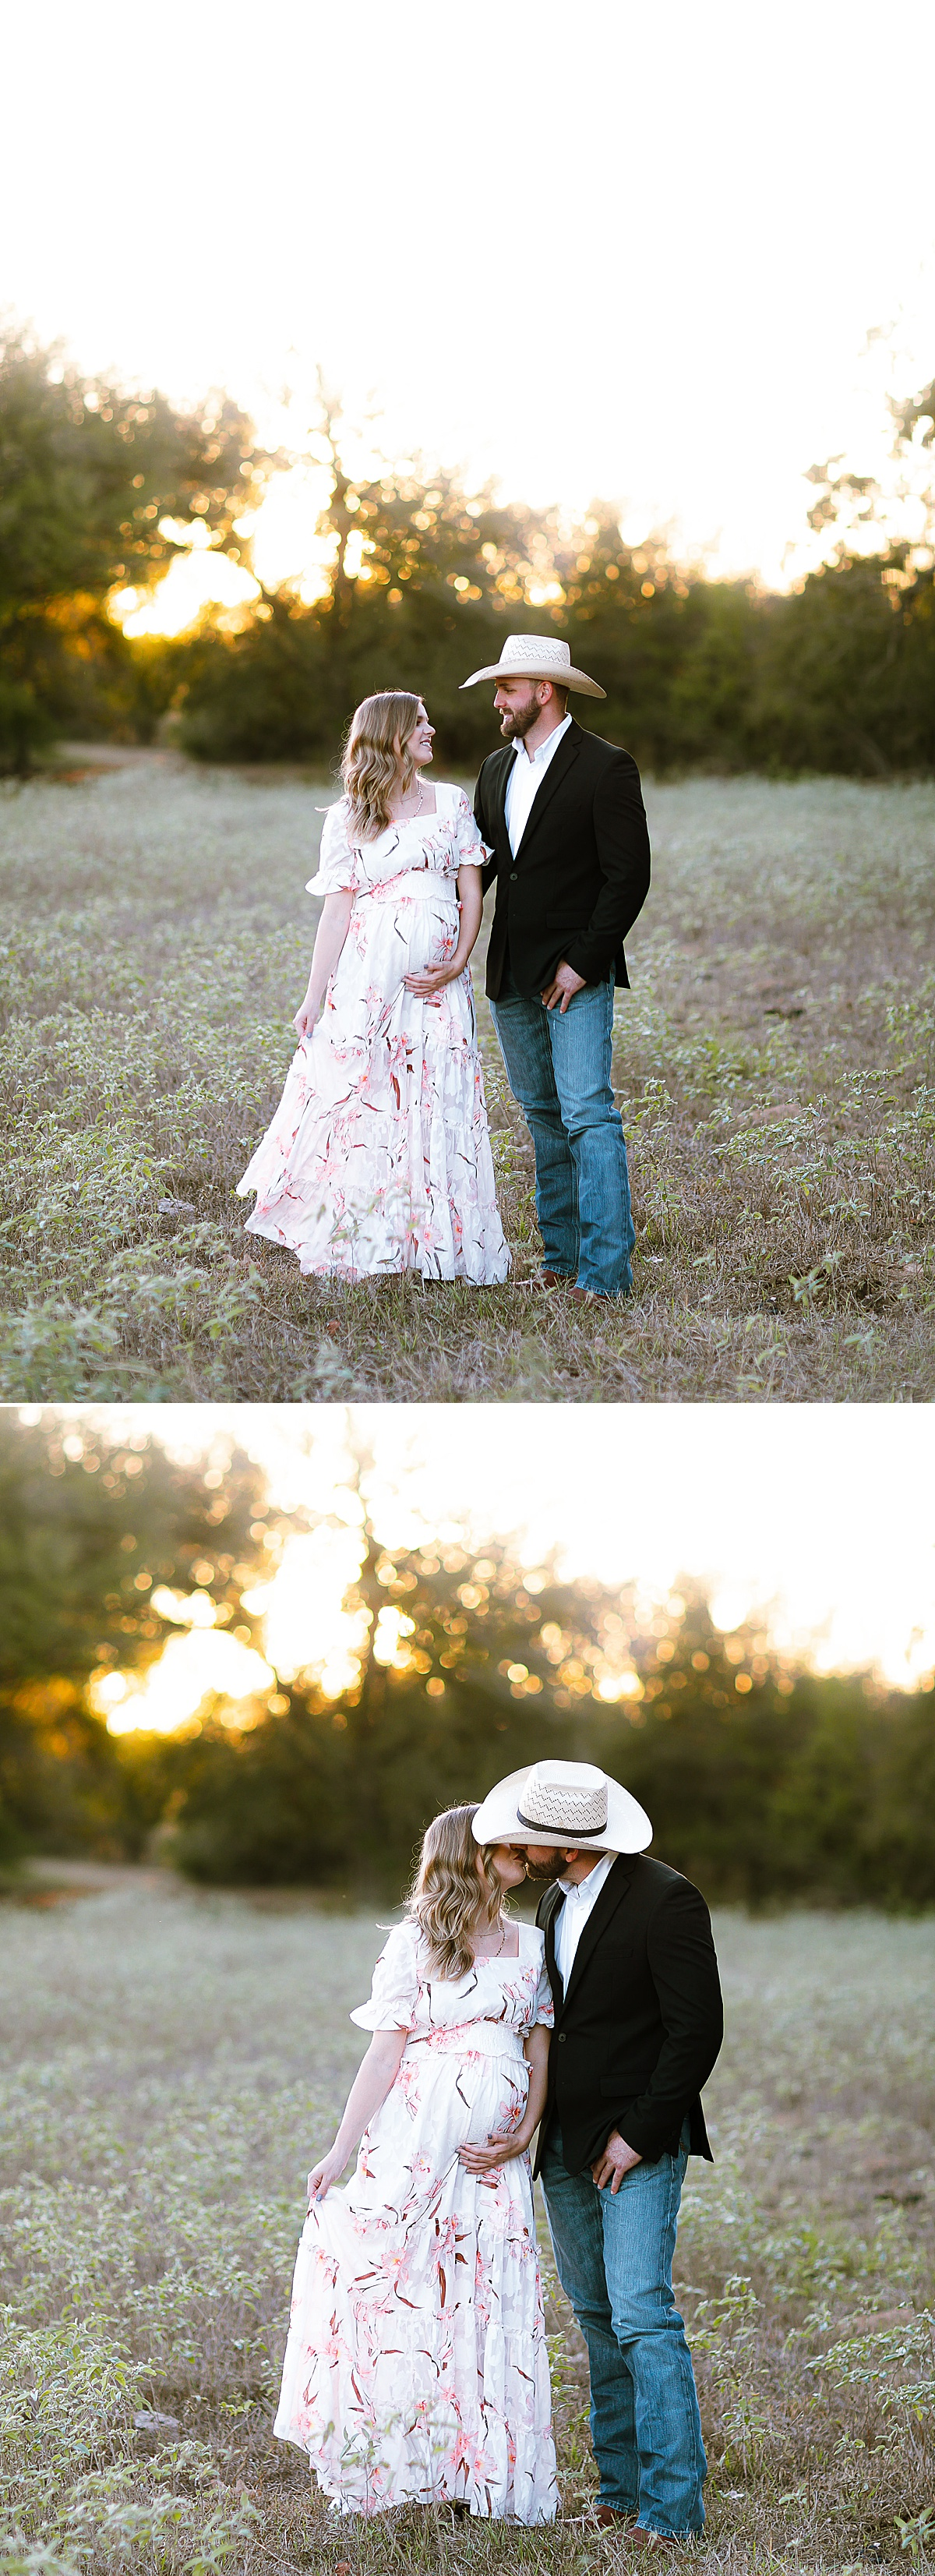 maternity-photo-session-lavernia-texas-carly-barton-photography_0027.jpg